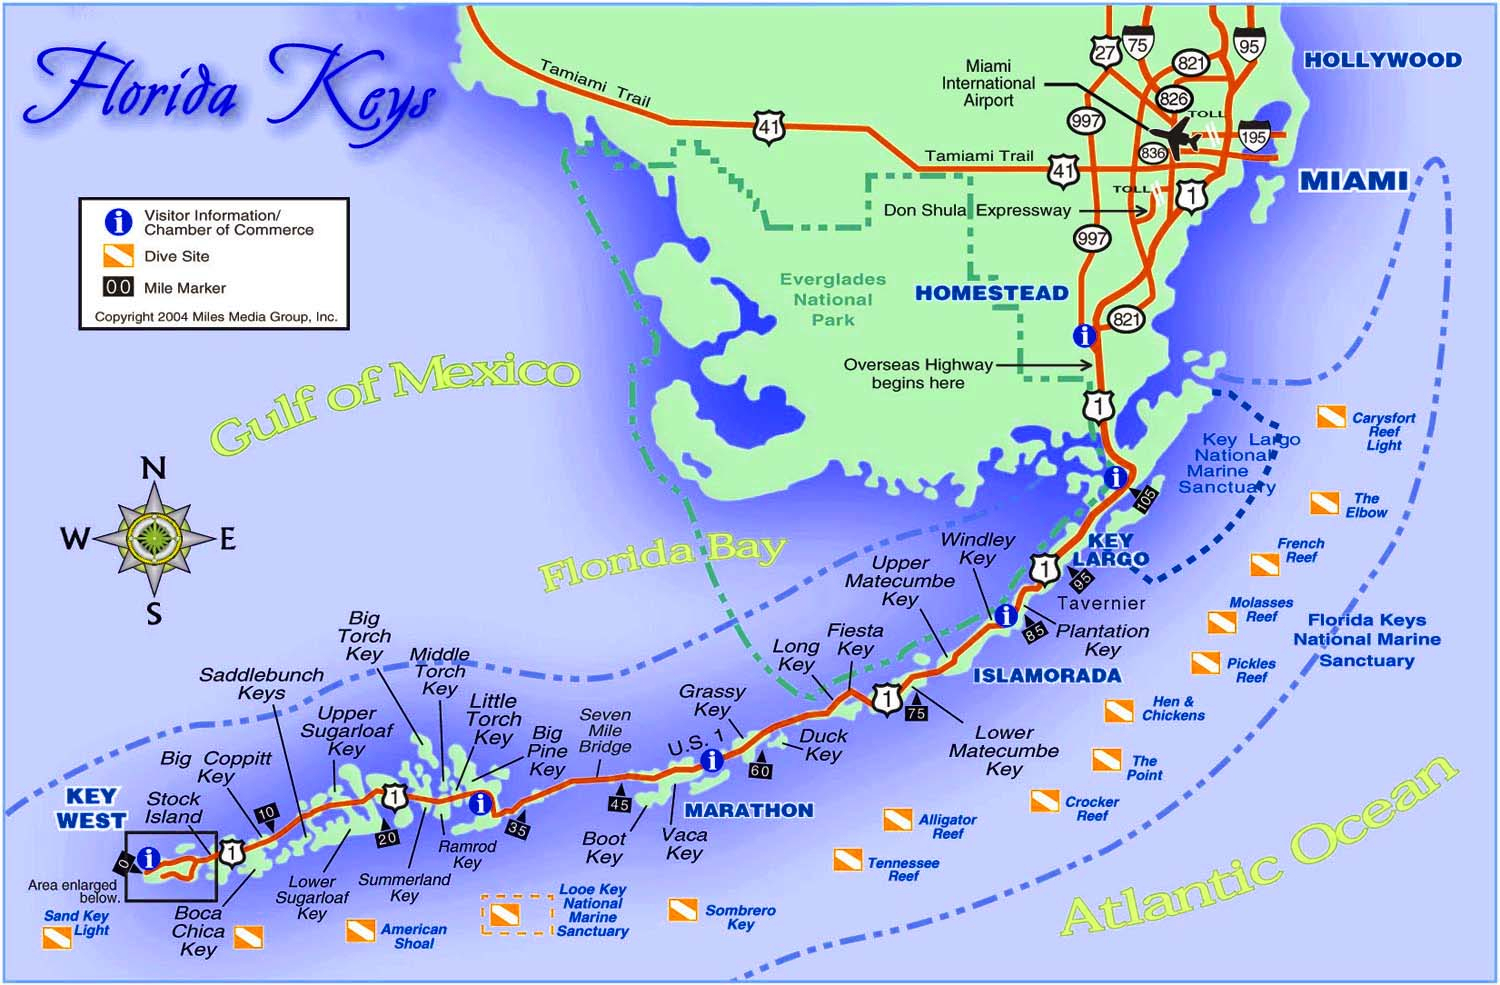 Best Florida Keys Beaches Map And Information - Florida Keys - Map Of Florida Keys Resorts